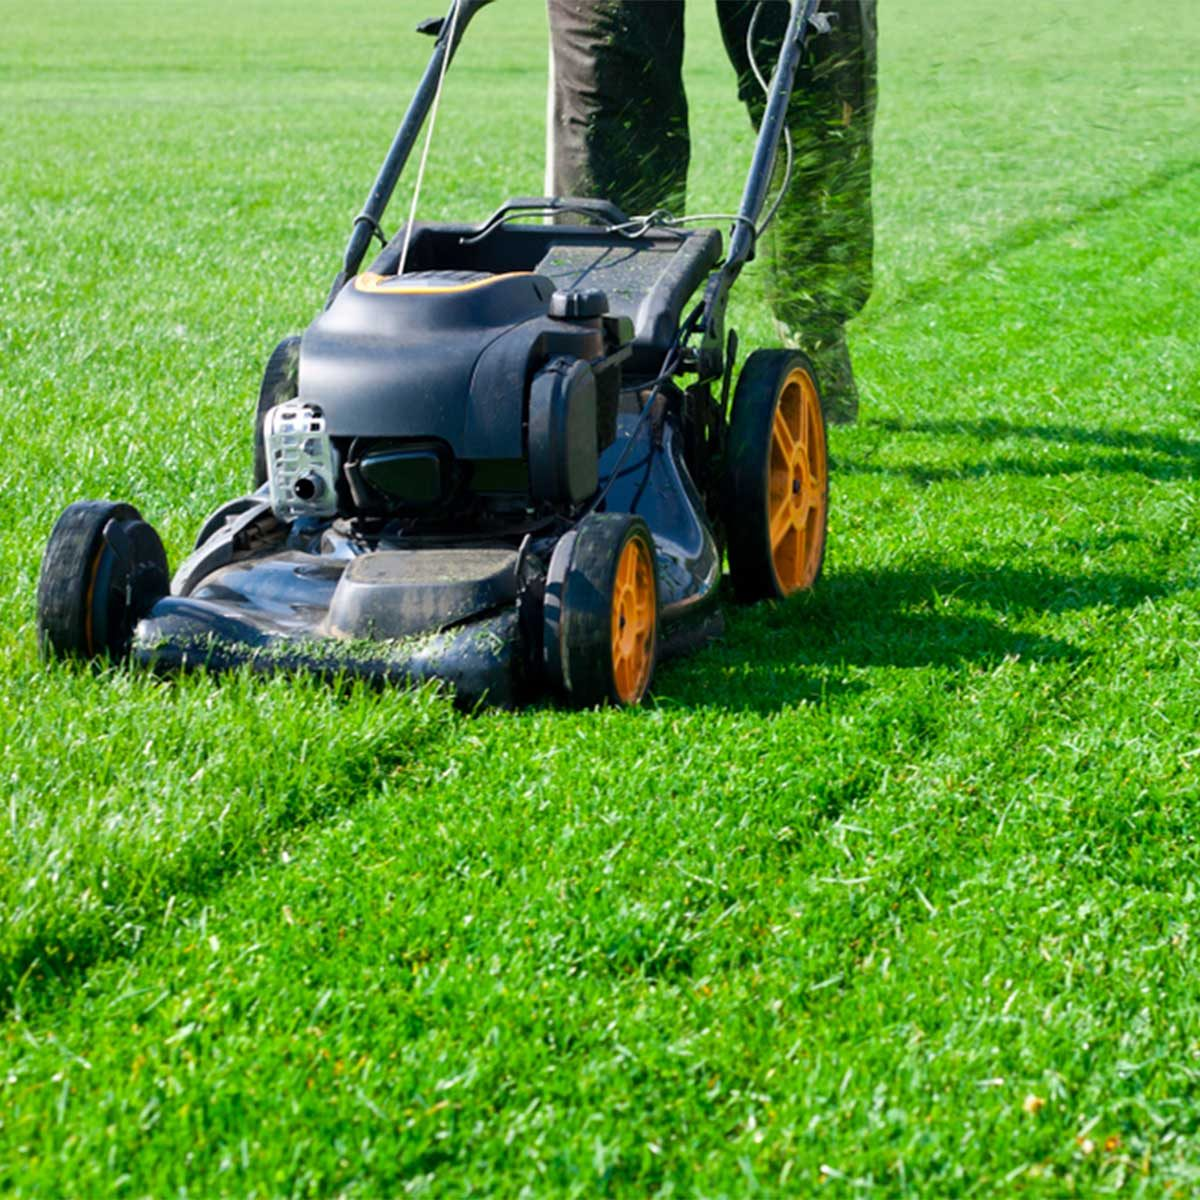 7 tips to mow like a pro | reader's digest